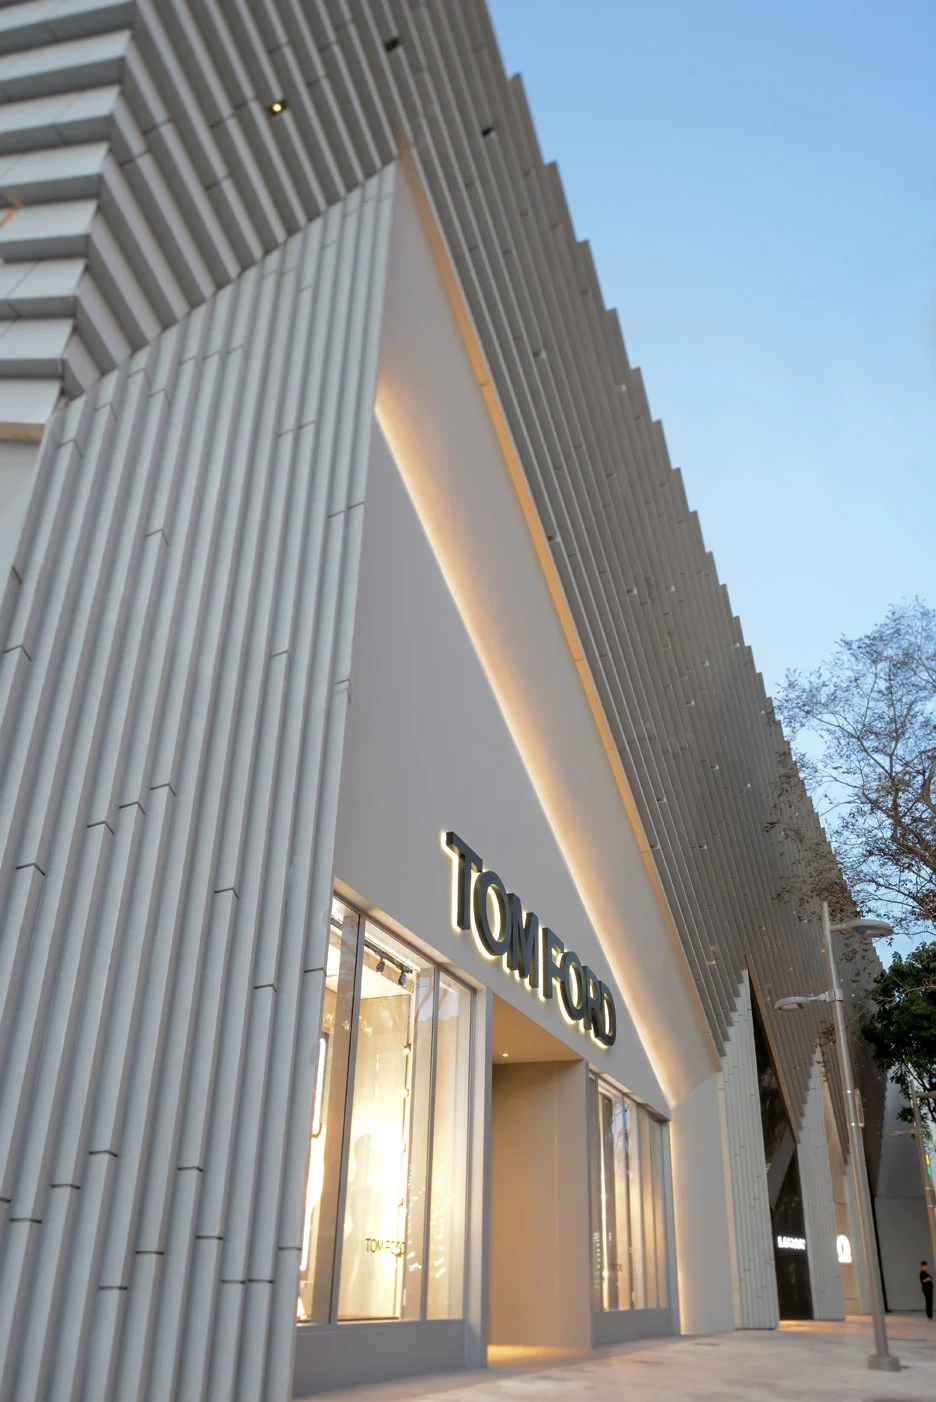 ArandaLasch adds pleated concrete facade to Tom Ford store